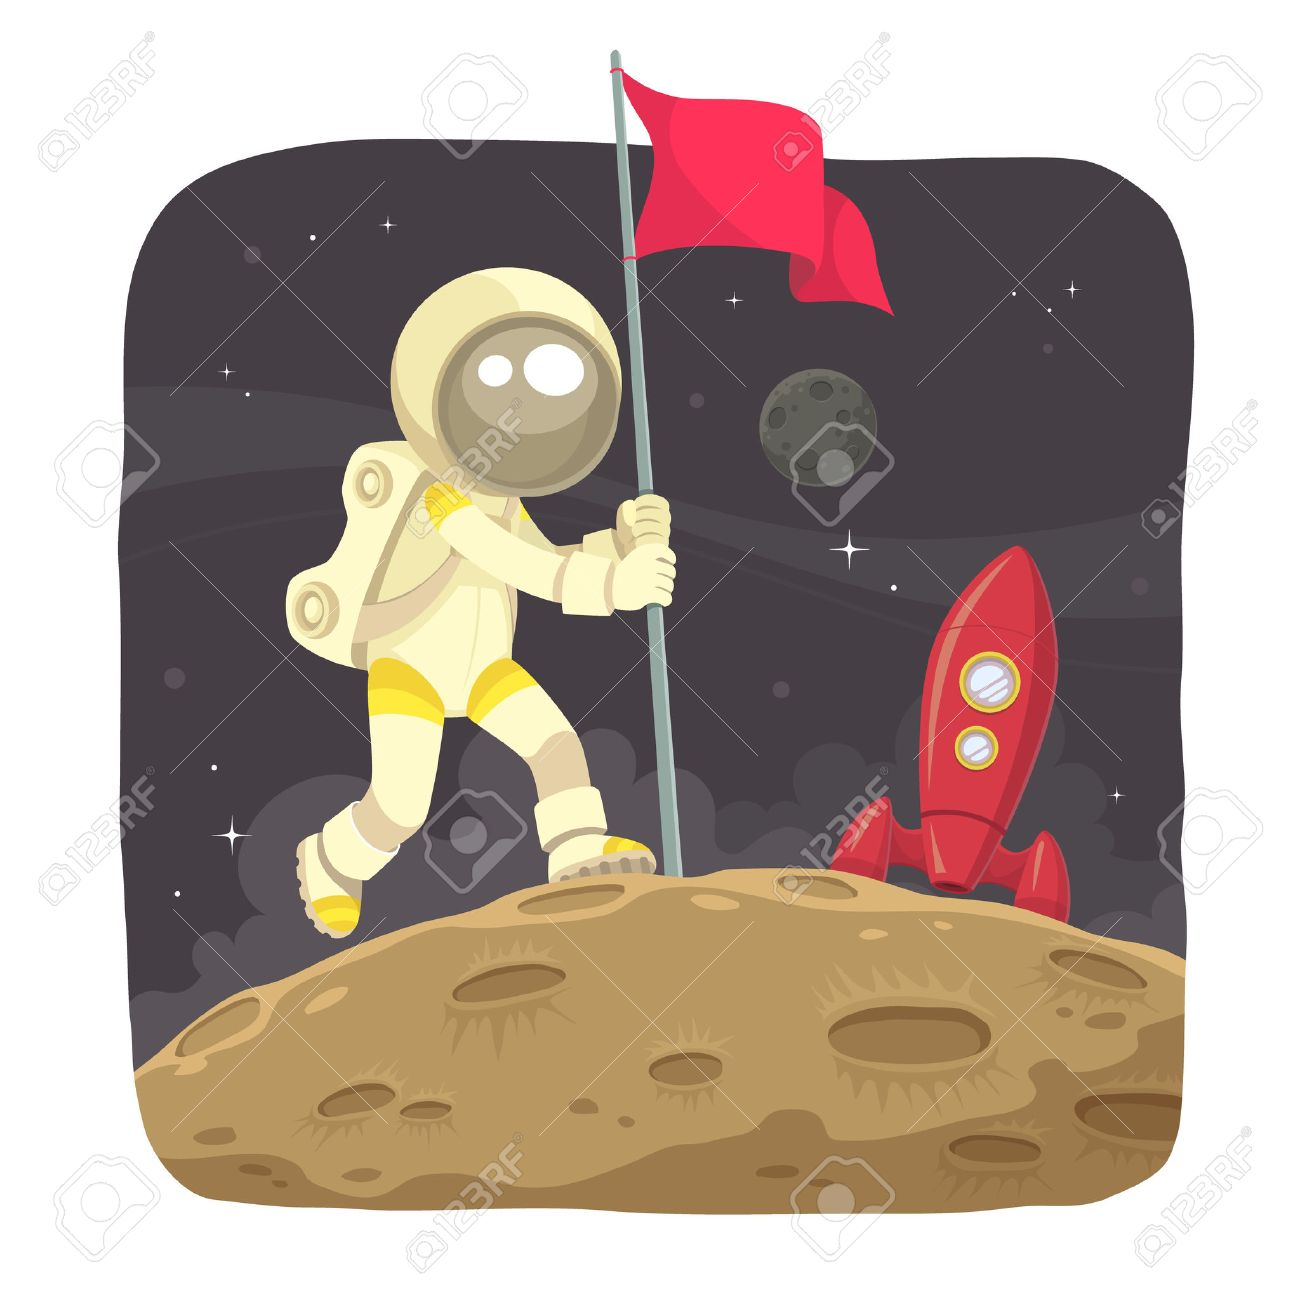 Space Adventurer  Astronaut landing on the moon and give a flag sign Stock Vector - 30683153